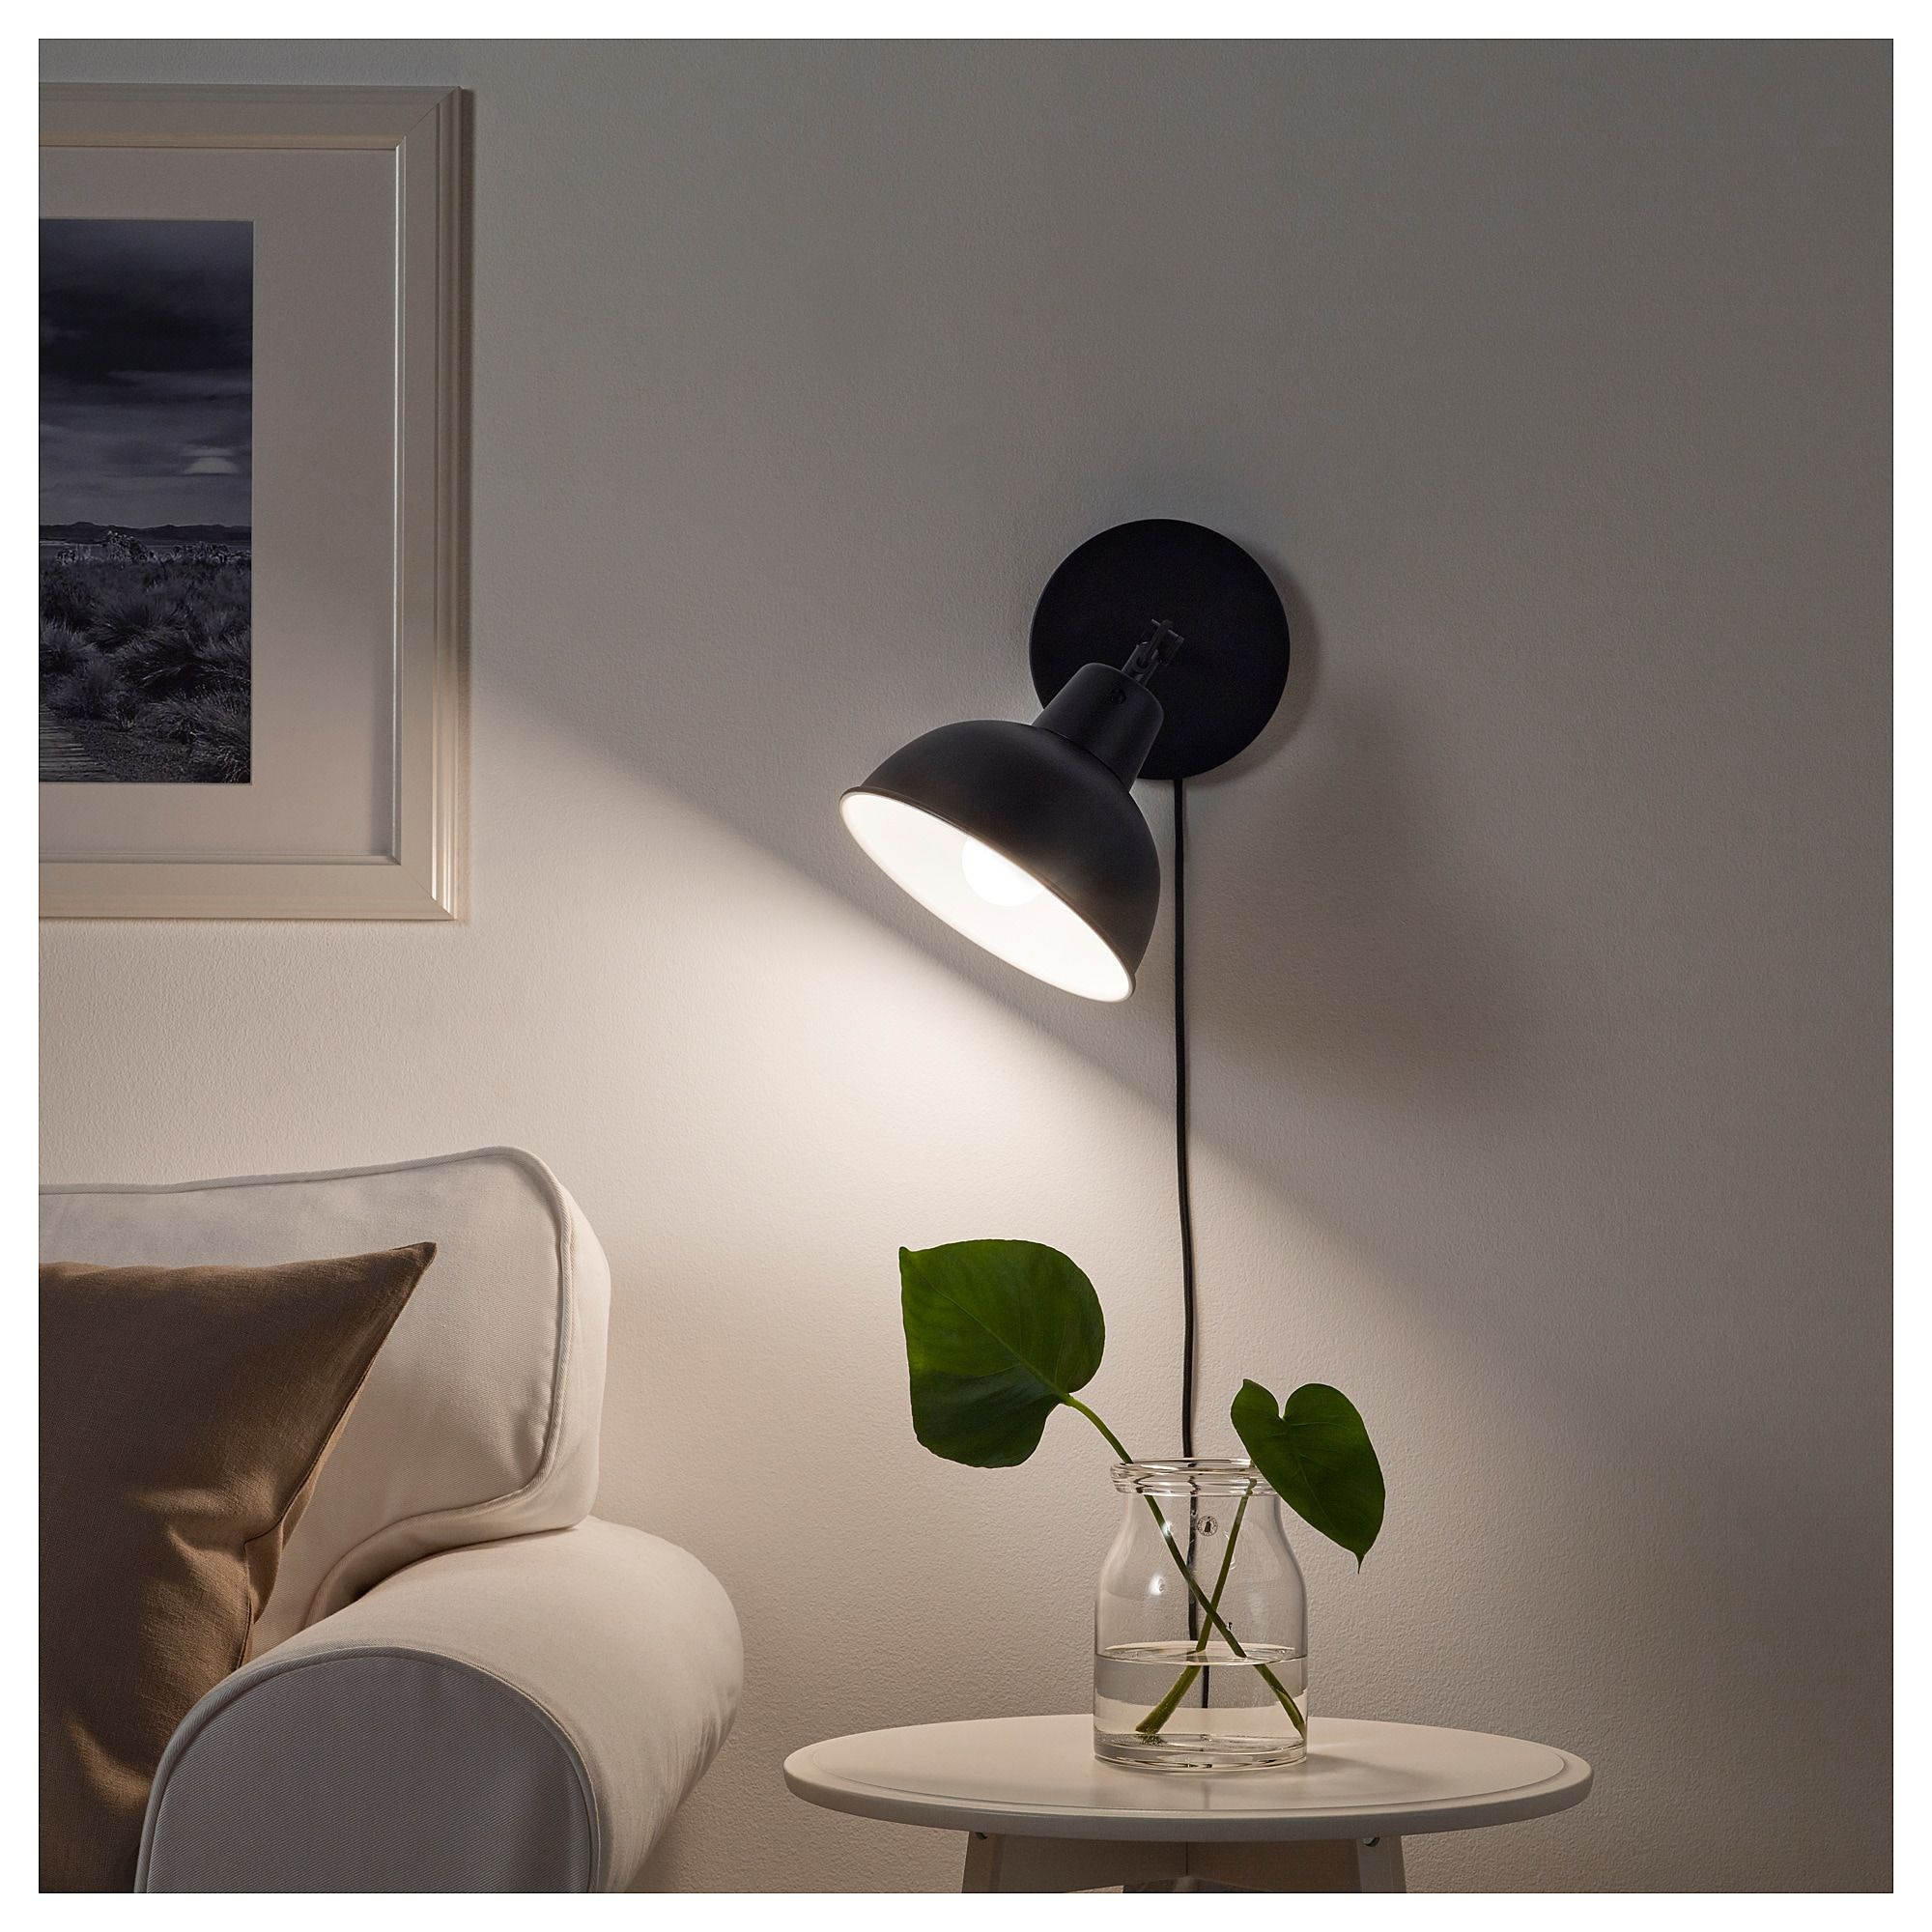 Applique Ikea Da Interno skurup table/wall uplight - black | lampade, lampade da